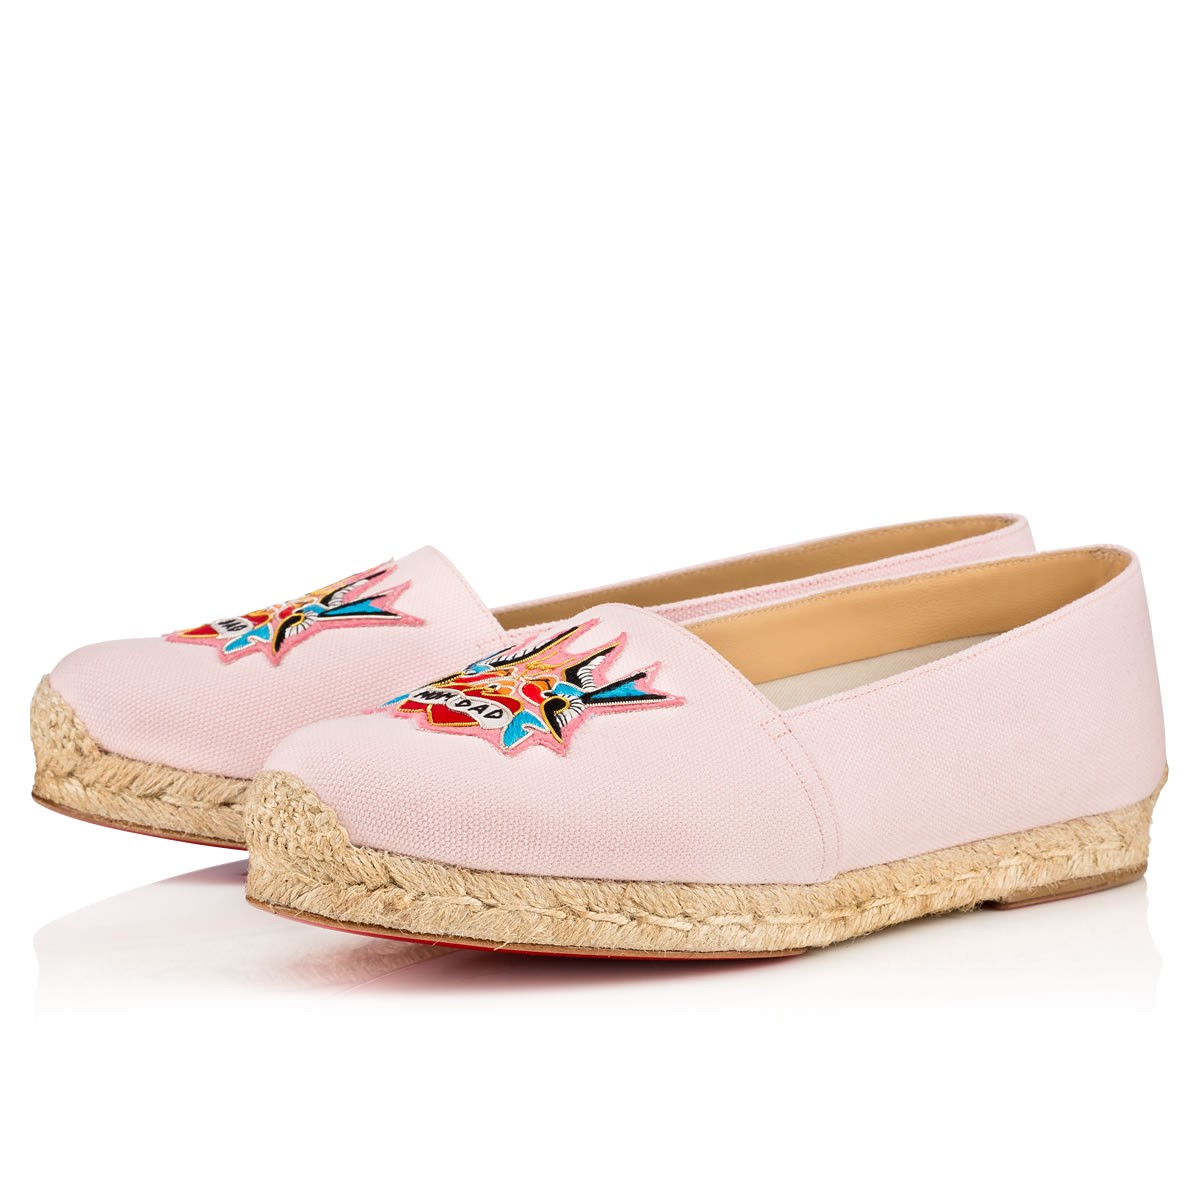 from china online great deals for sale Christian Louboutin Mom & Dad Espadrille Flats 100% original cheap price top quality cheap sale order D0Vn9Bmjp6